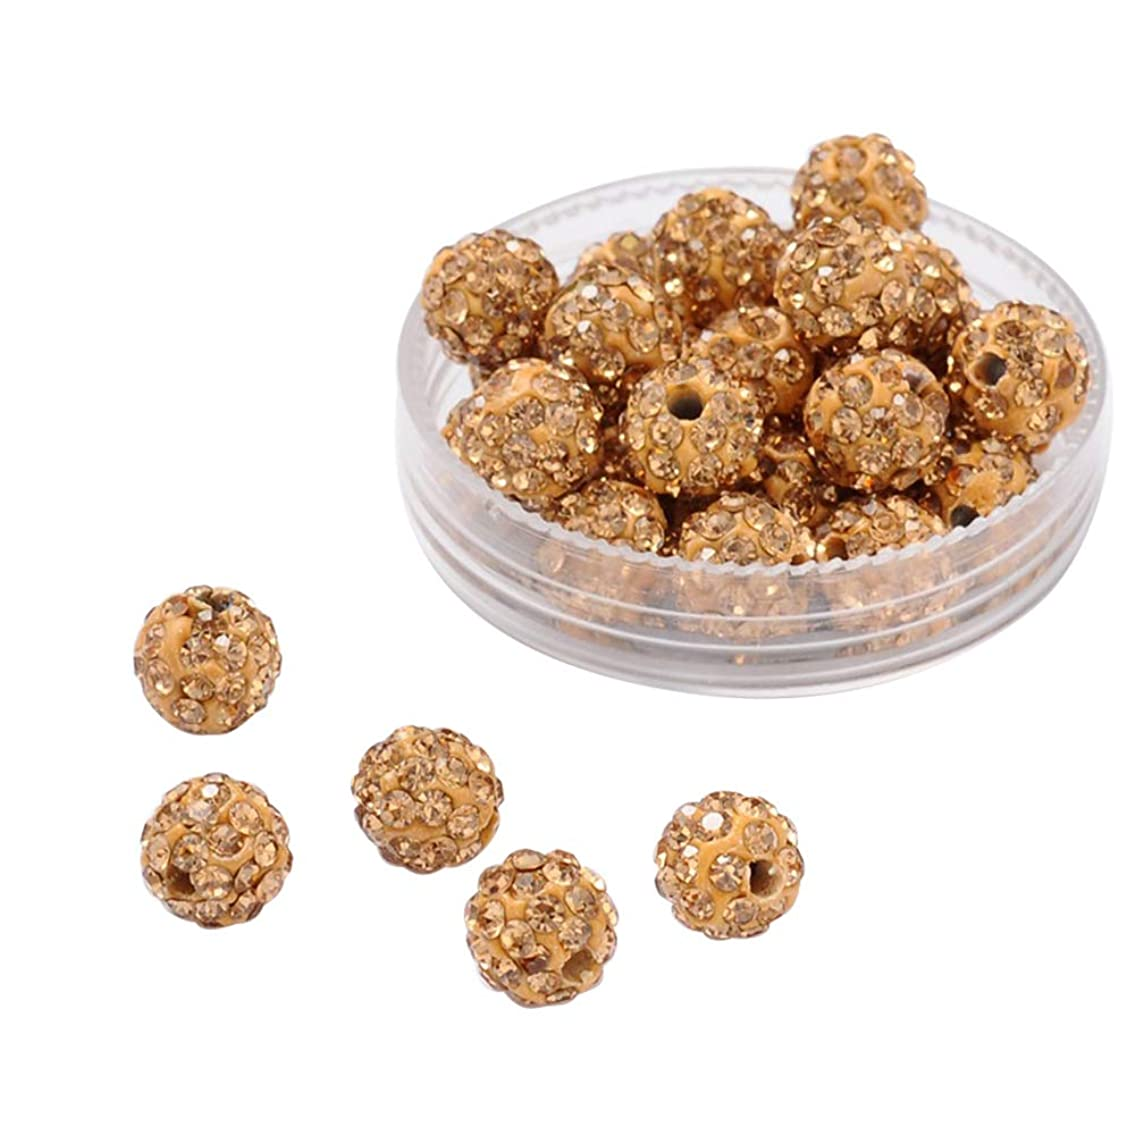 PH PandaHall About 100 Pcs 8mm Clay Pave Disco Ball Czech Crystal Rhinestone Shamballa Beads Charm Round Spacer Bead for Jewelry Making Light Brown